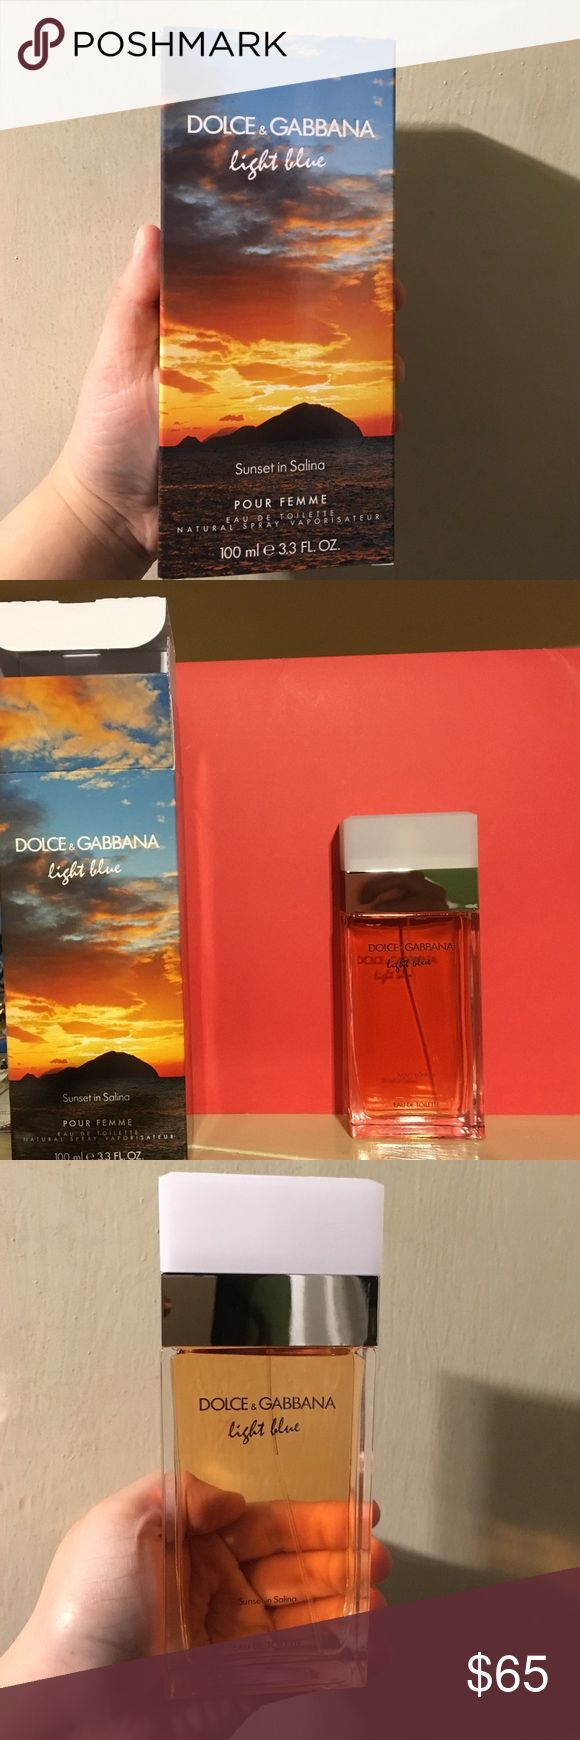 Brand New Dolce and Gabbana Perfume Special edition of Light Blue fragrance. Sunset in Salina, 3.4 ml eau de toilette for Women. Dolce & Gabbana Other